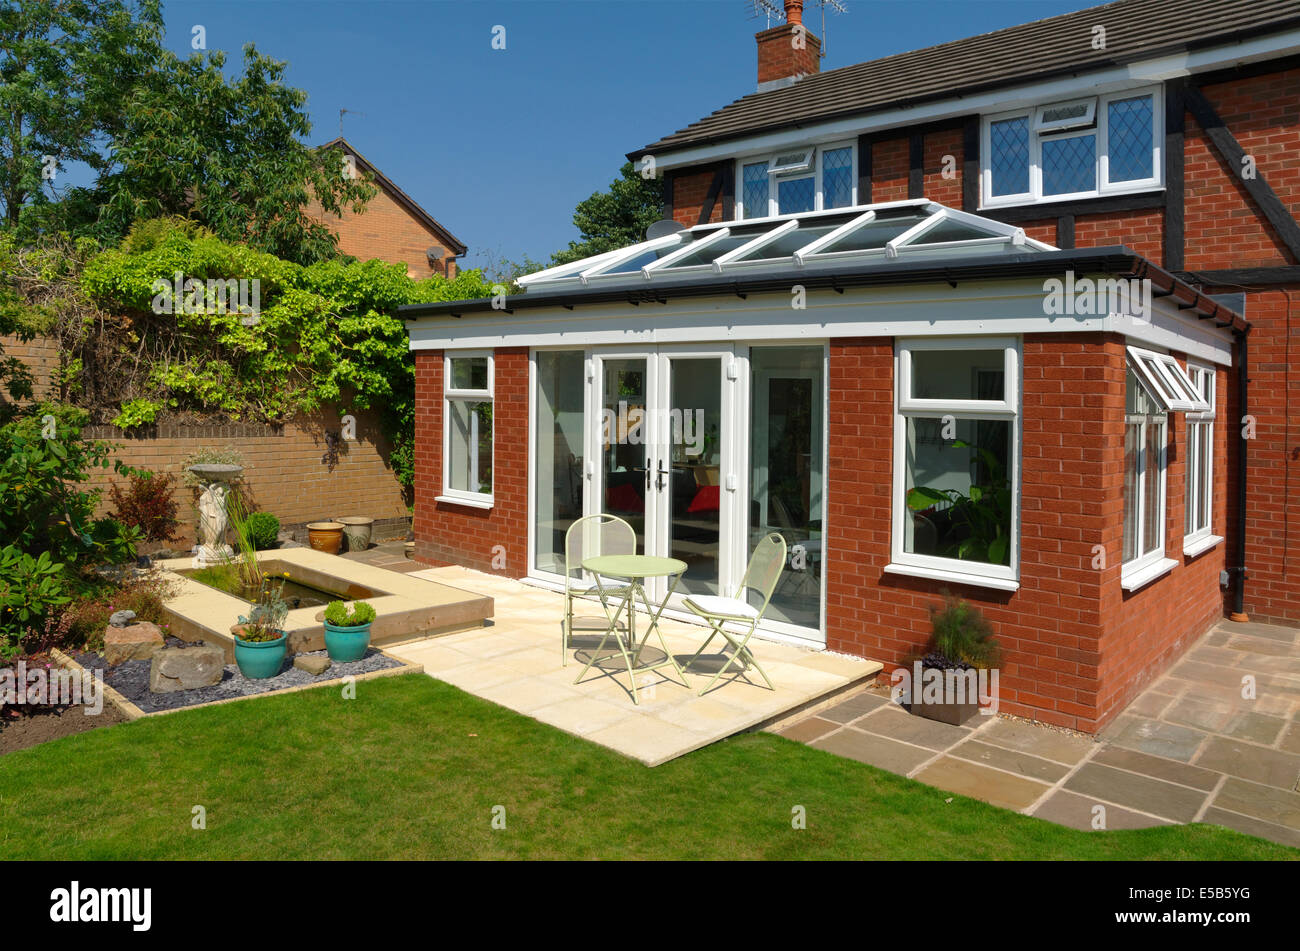 Orangery style conservatory exterior view home improvement for Conservatory doors exterior